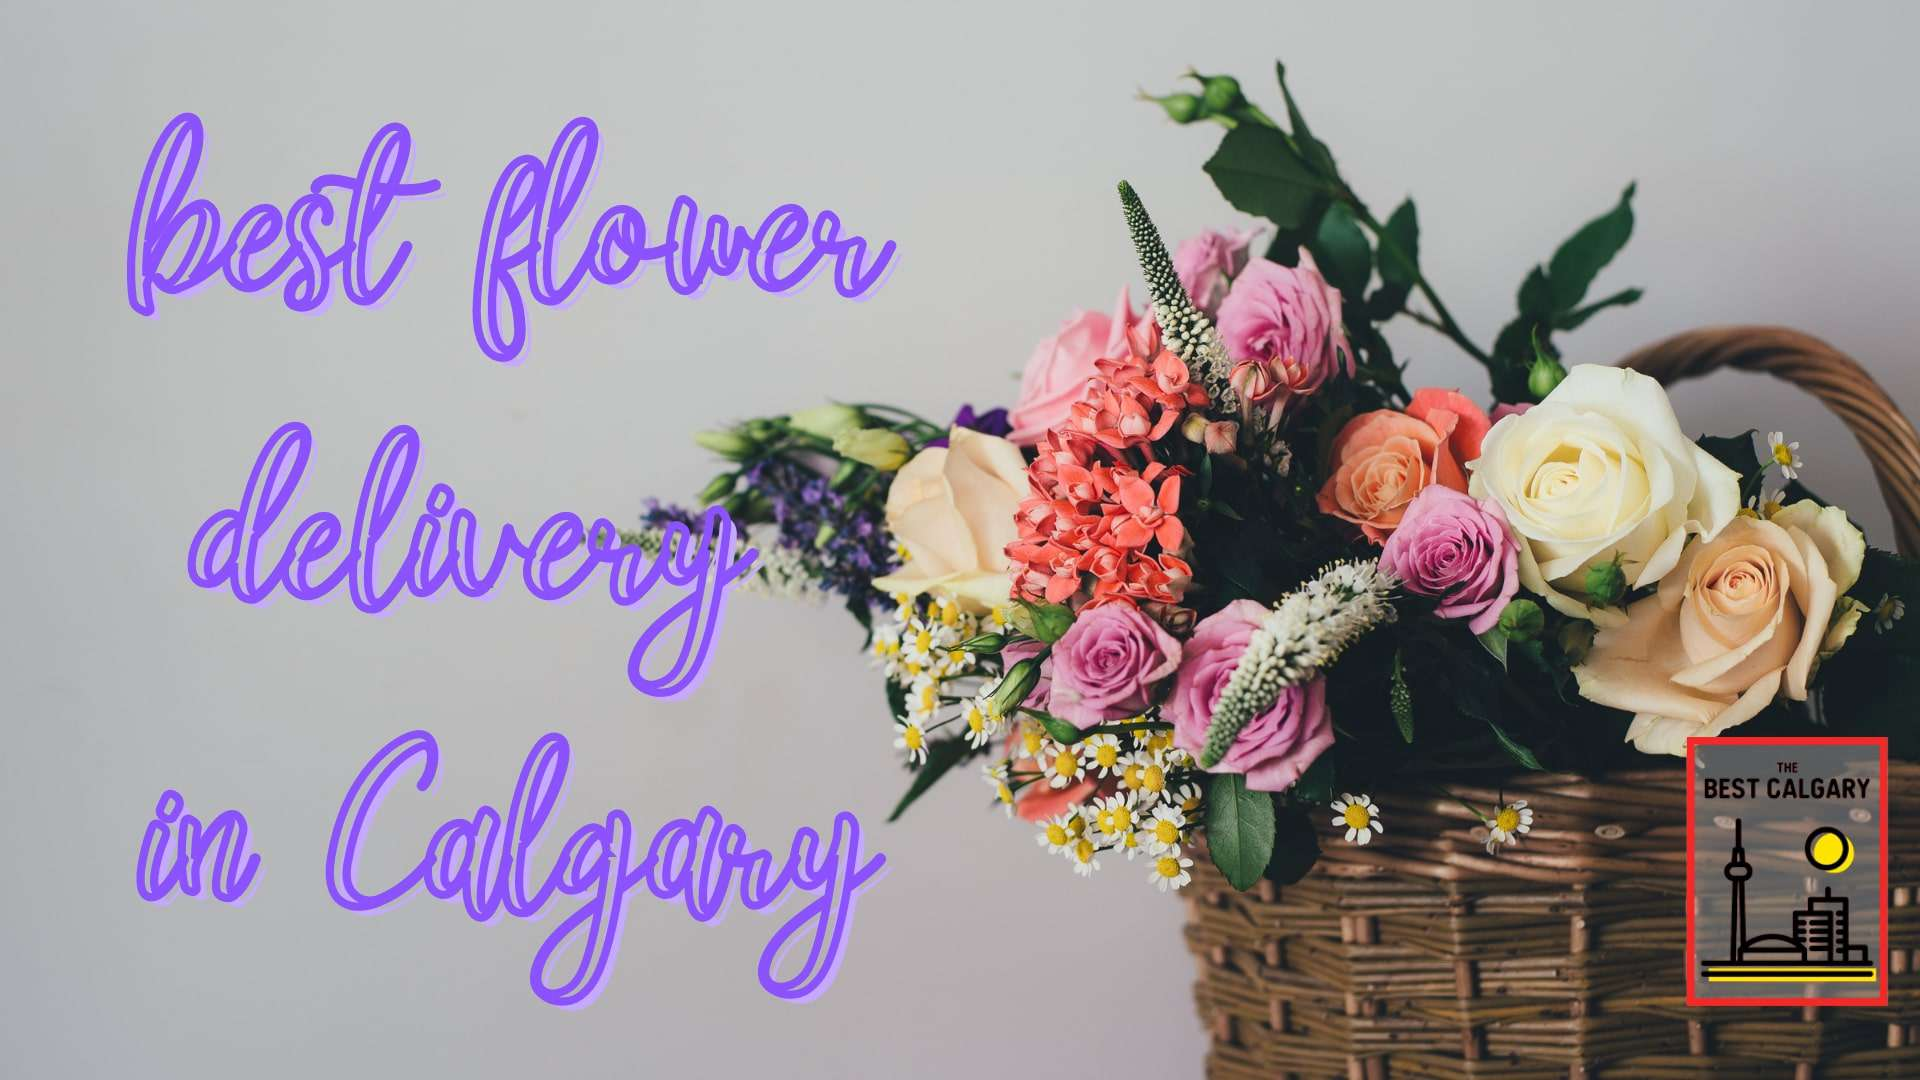 Best Flower Delivery in Calgary